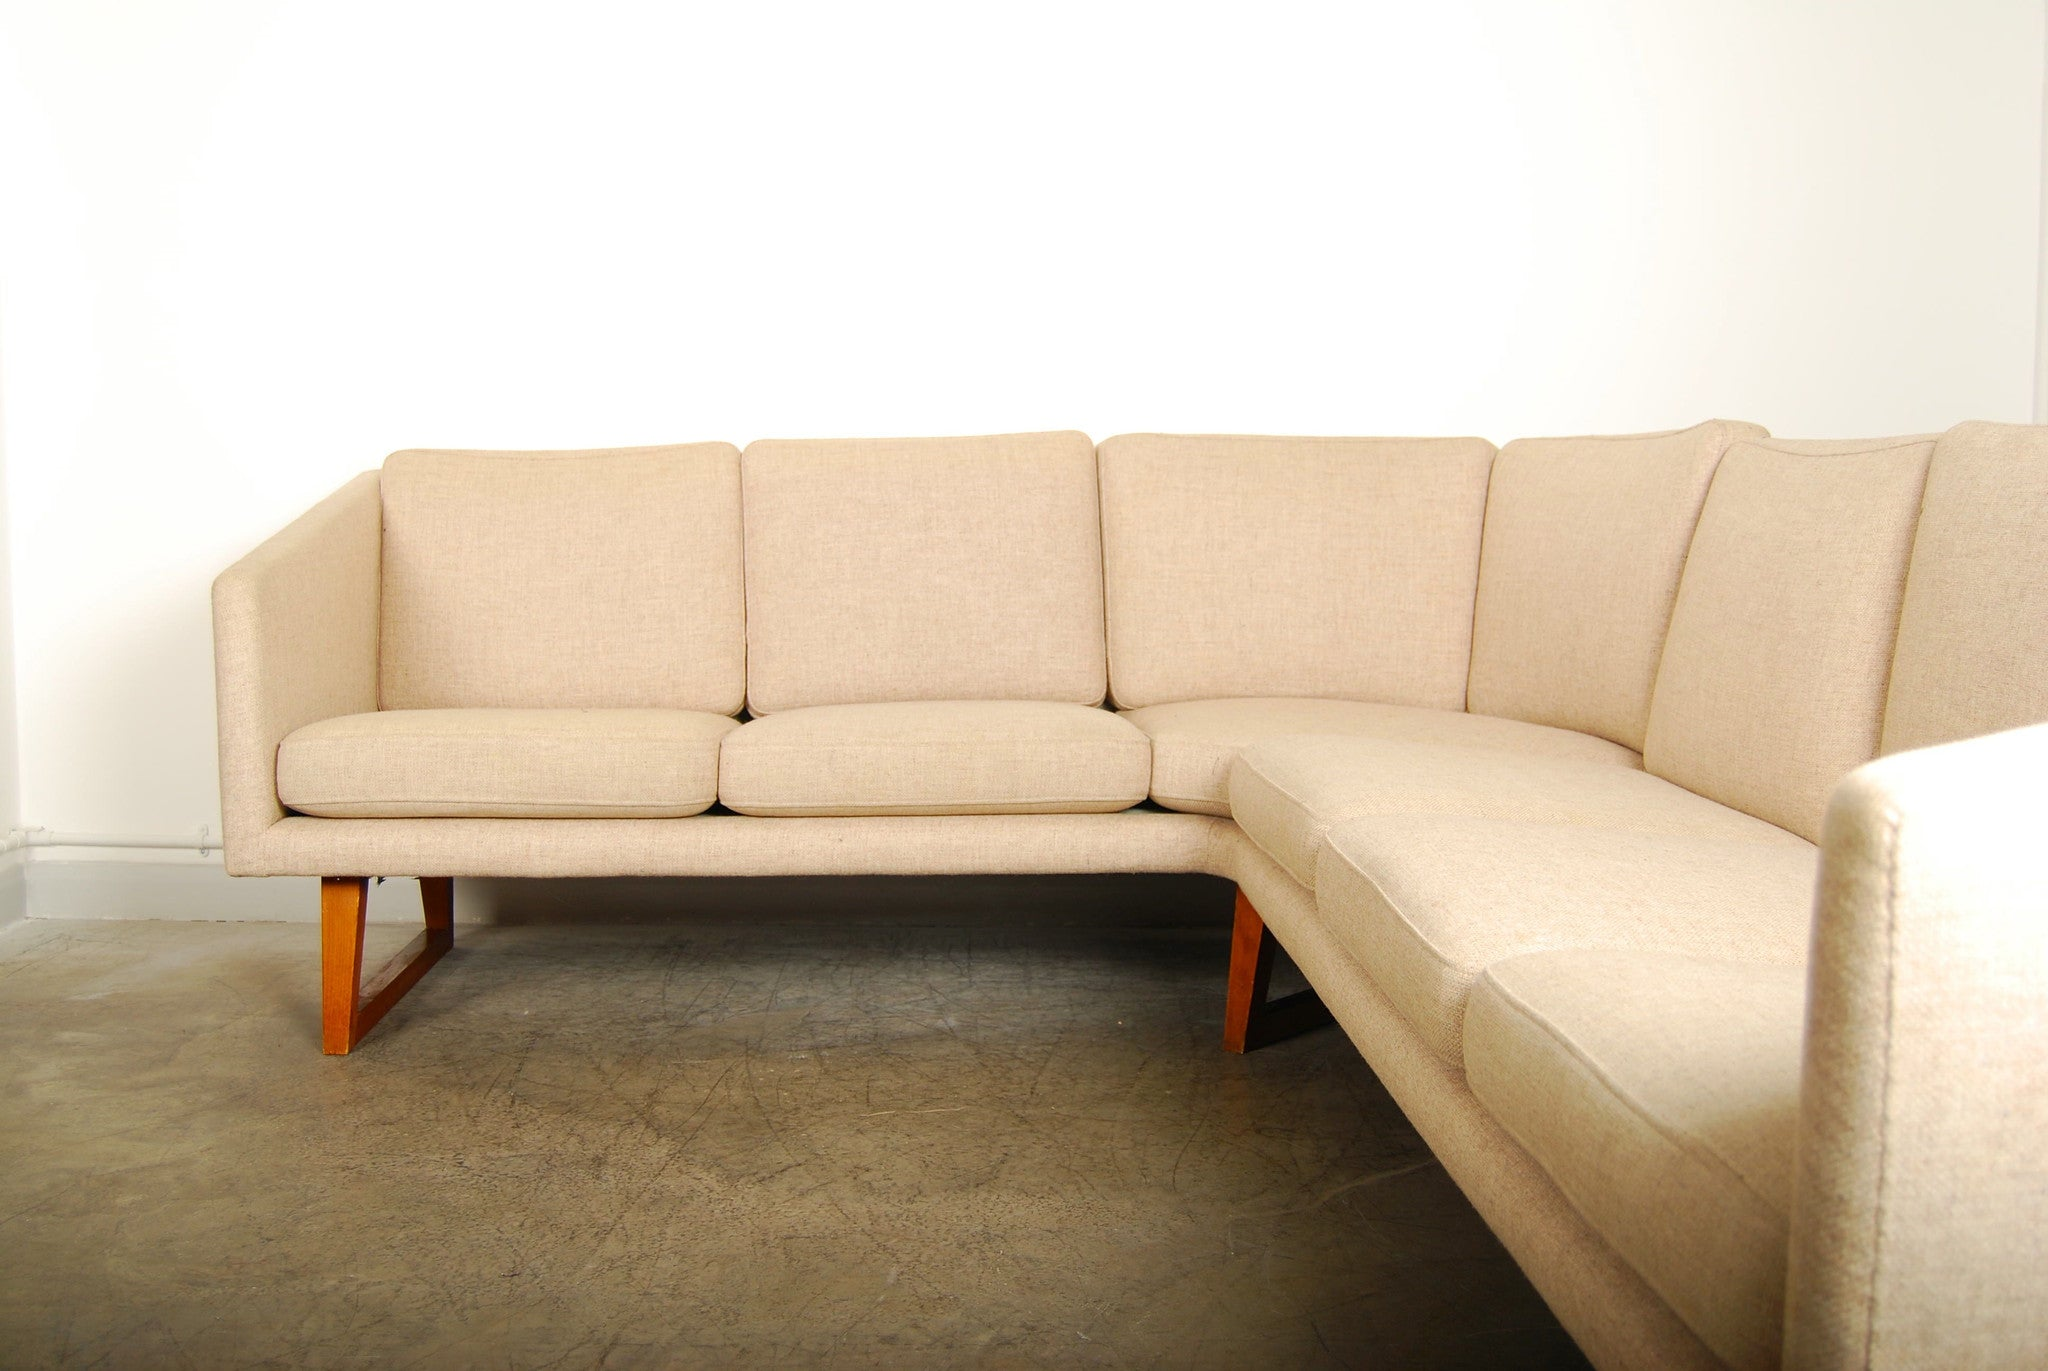 Chase & Sorensen Corner sofa in wool on teak legs